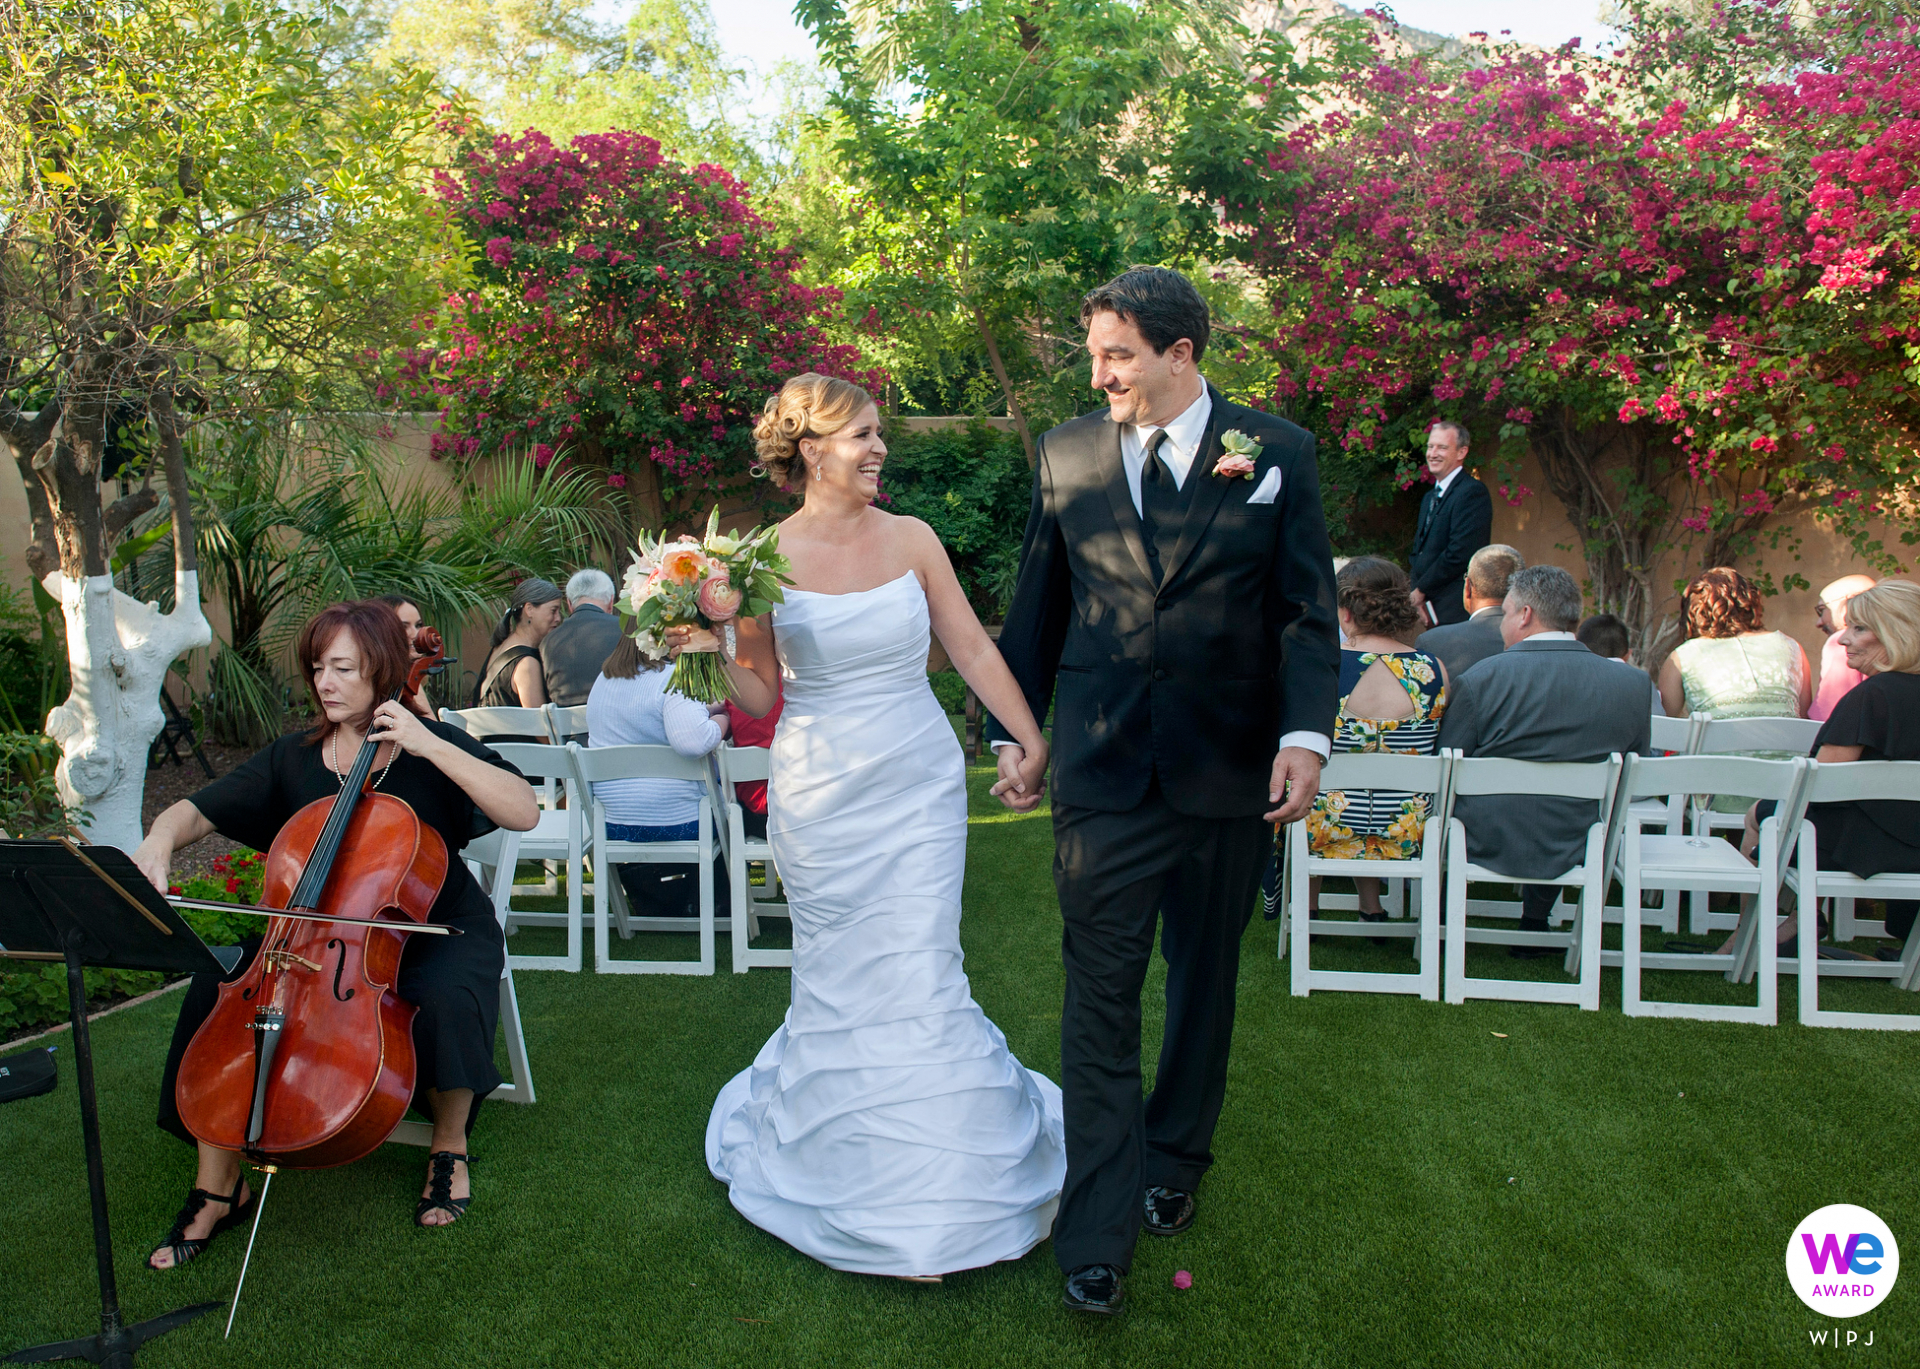 Royal Palms Resort and Spa, Phoenix, Arizona Elopement Photographer | The bride and groom exit the ceremony hand-in-hand as the cellist plays them out of the lush alcove surrounded by flowers